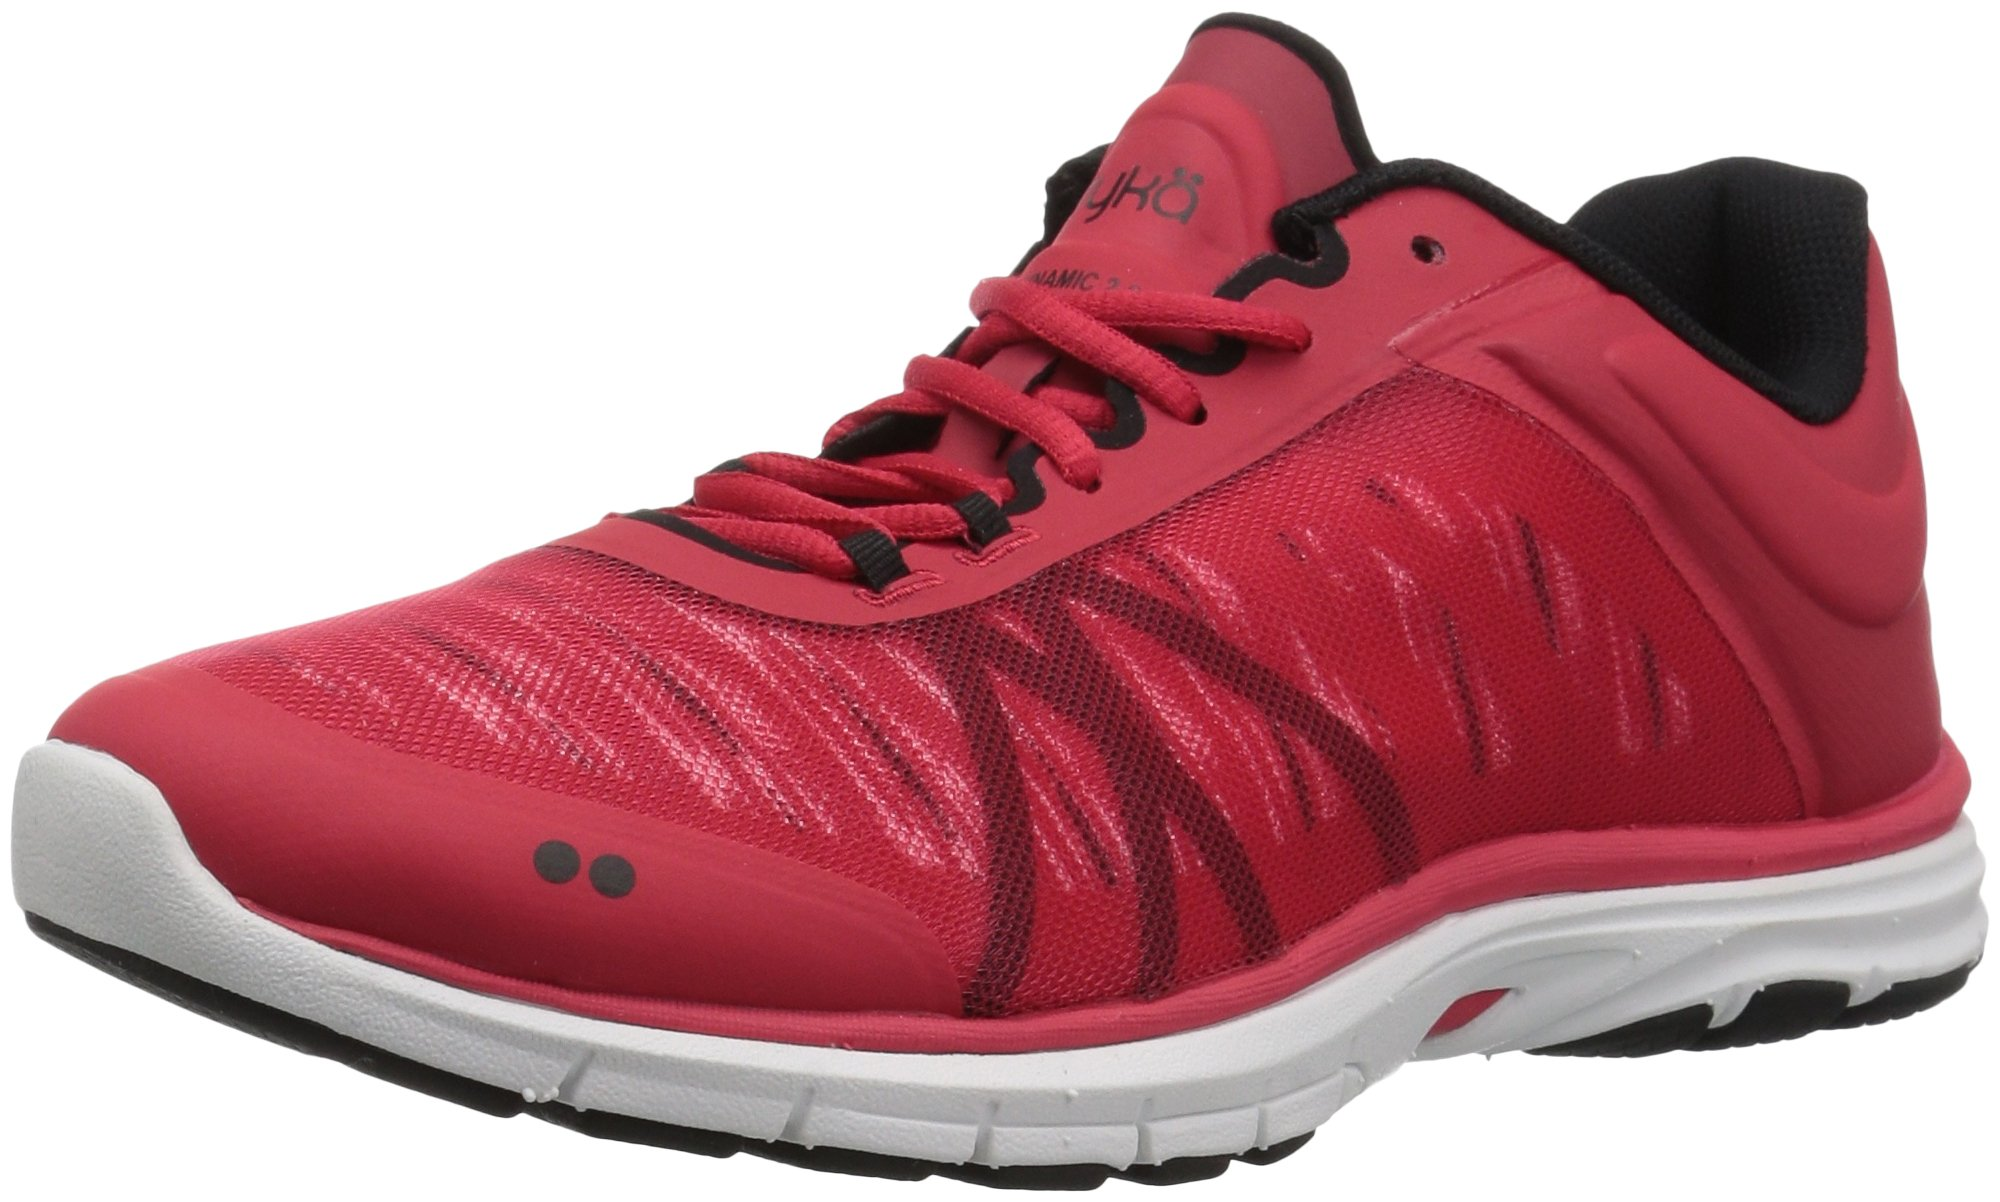 Ryka Women's Dynamic 2.5 Cross Trainer, red/Black, 11 M US by Ryka